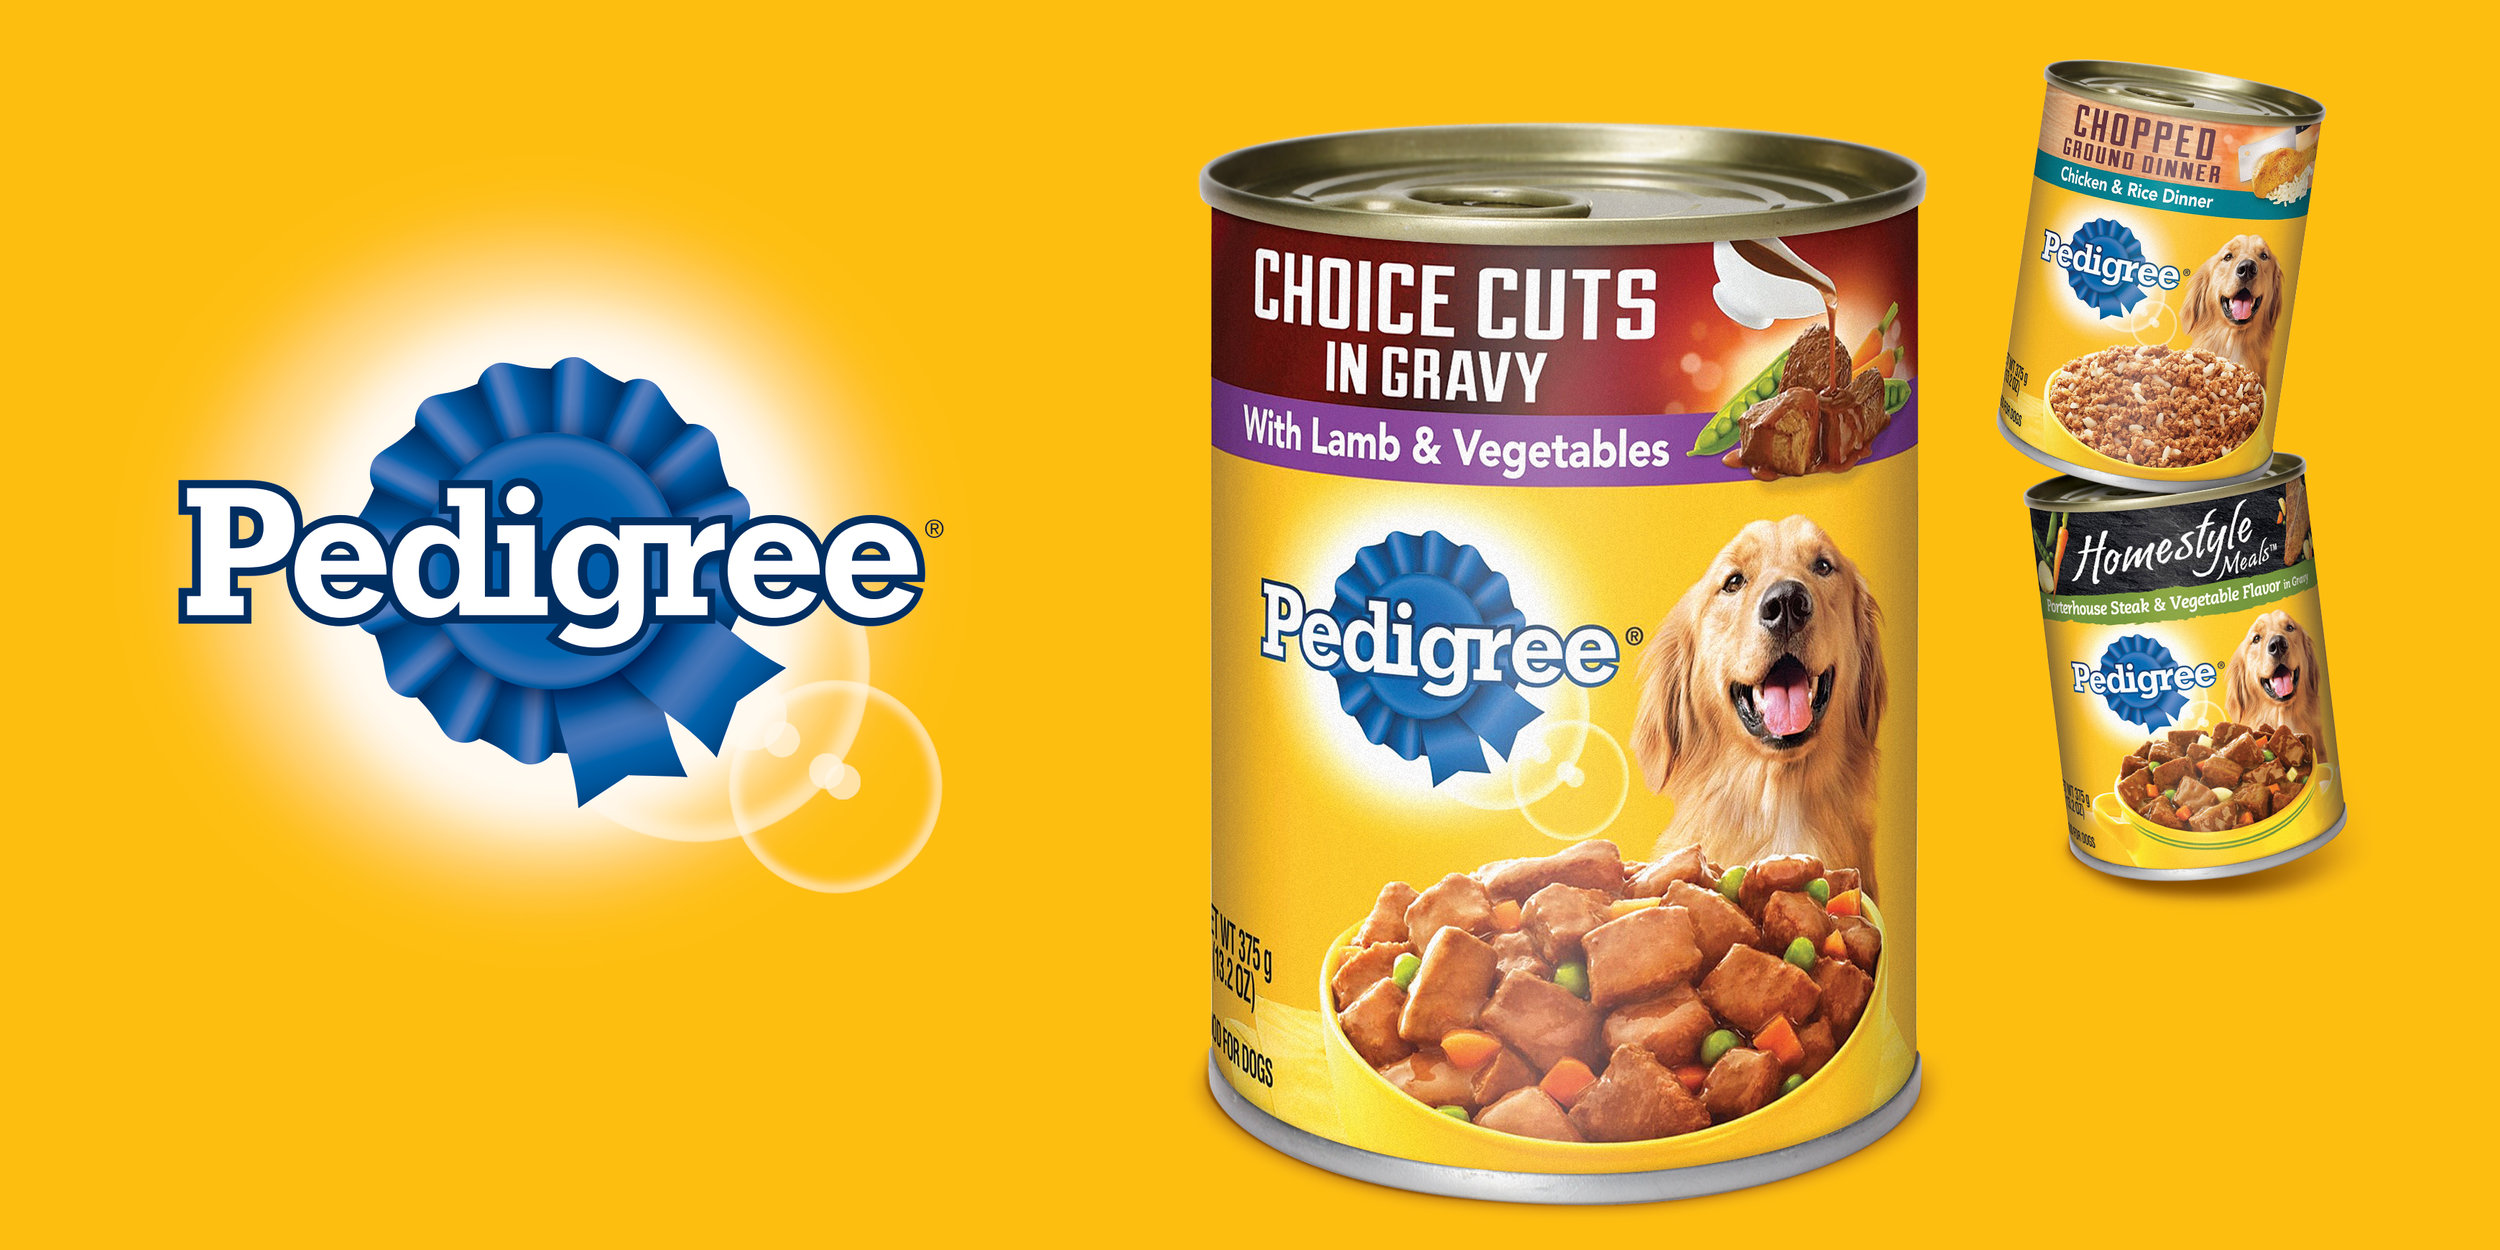 New Pedigree USA Can Design